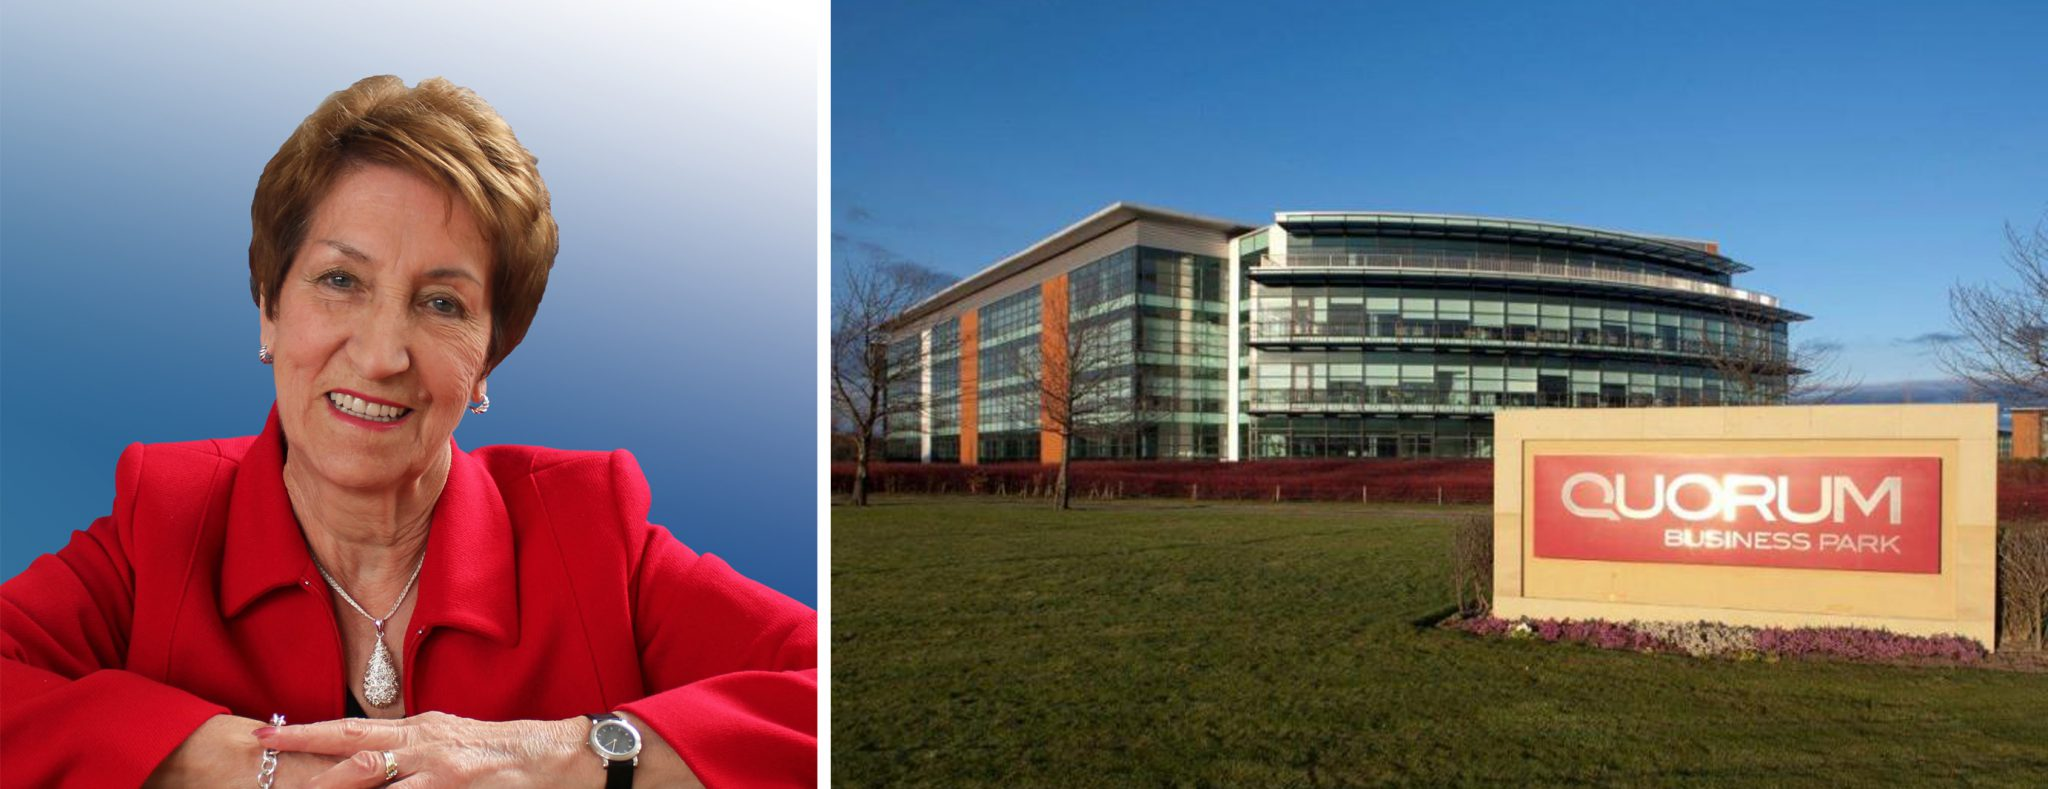 Quorum Business Park and Norma Redfearn CBE